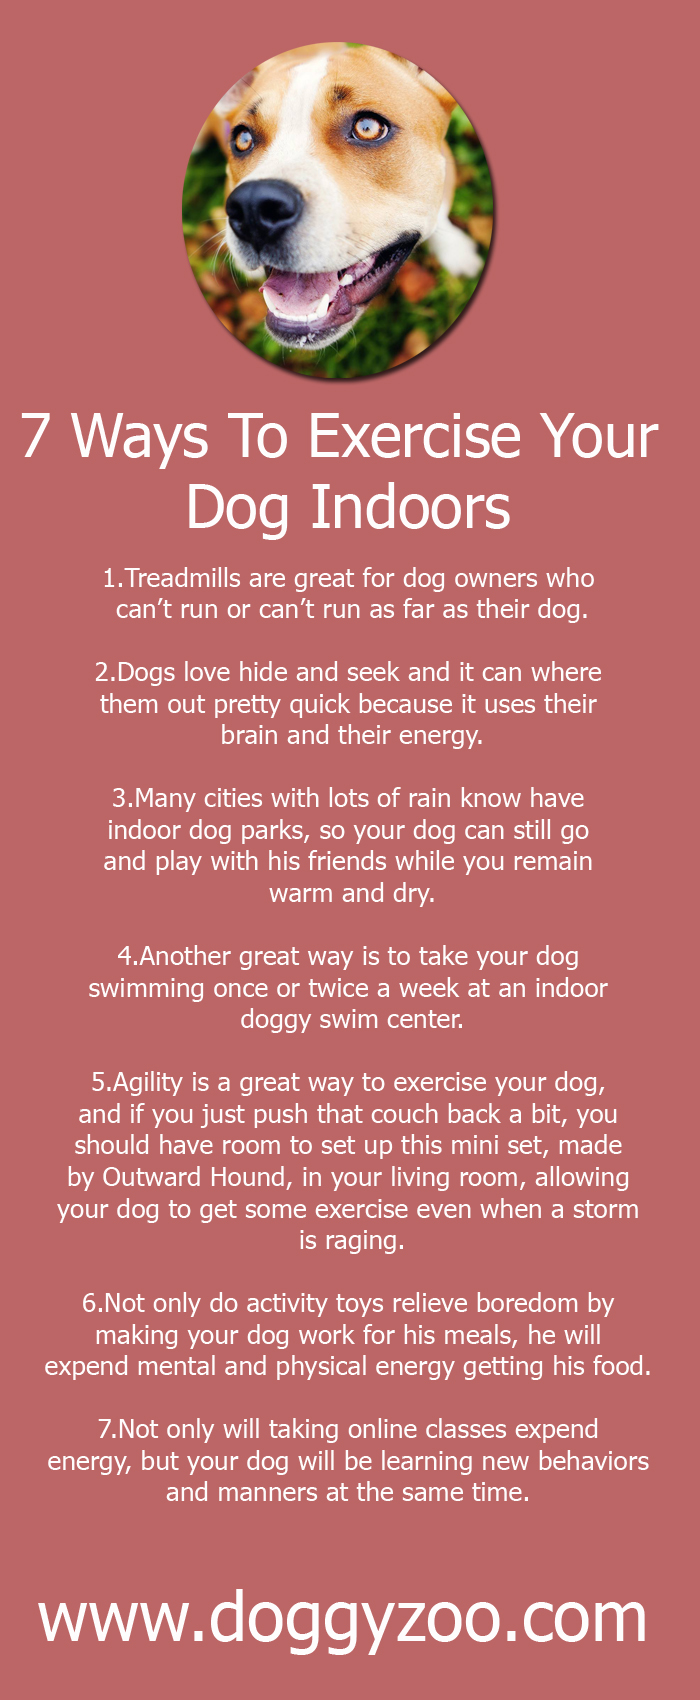 7 Ways To Exercise Your Dog Indoors